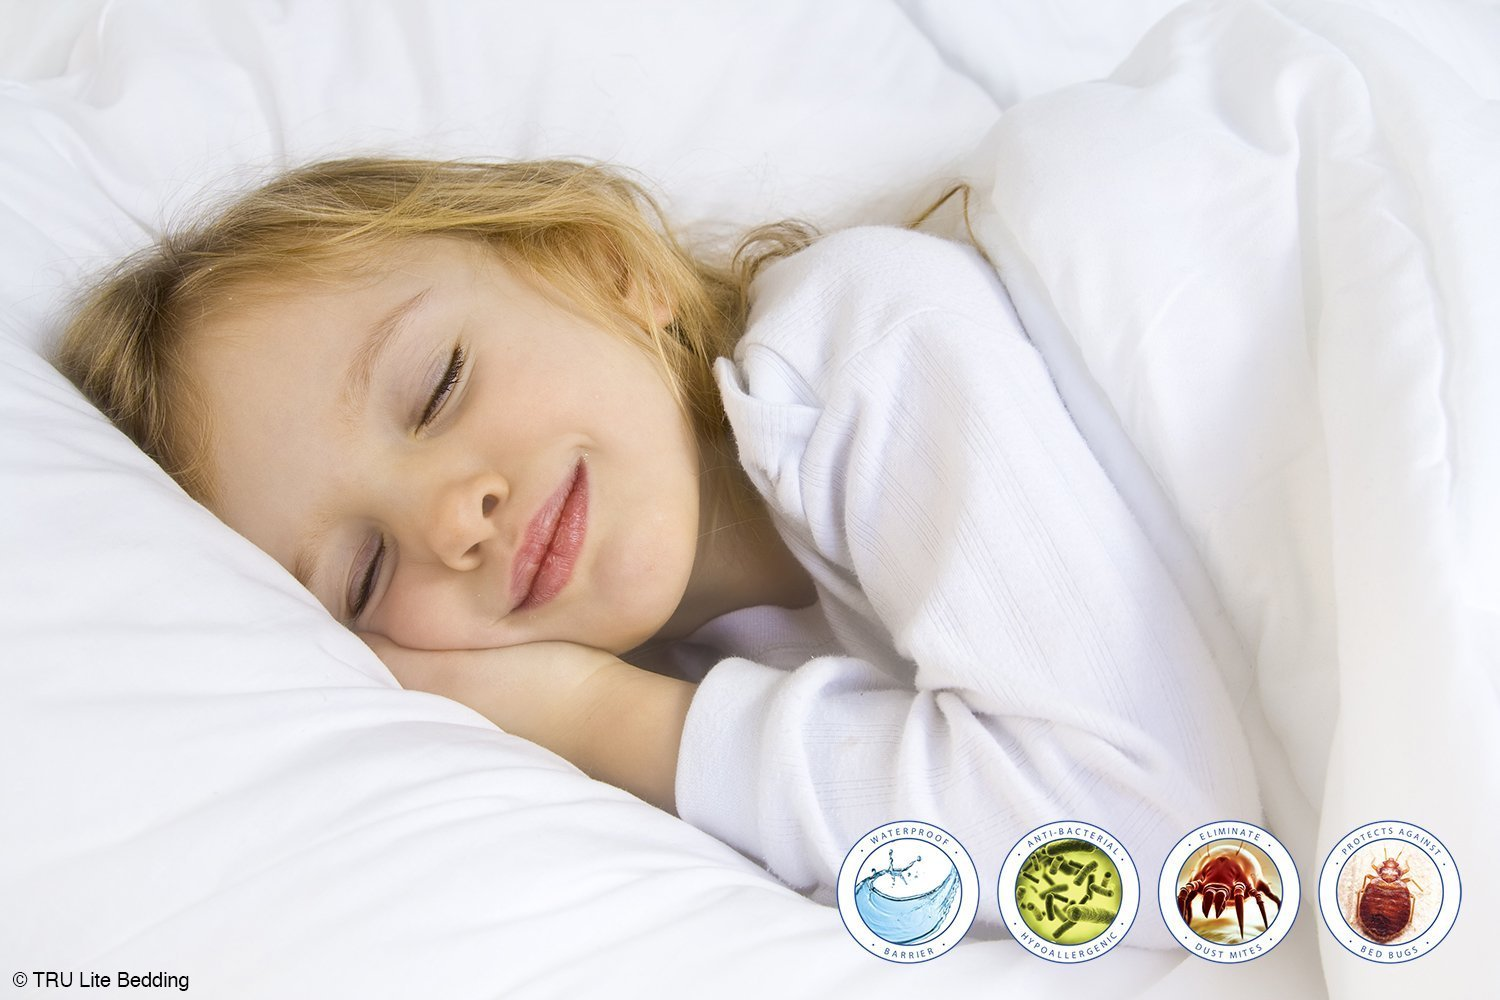 TRU Lite Bedding Pillow Covers - Dust Mite Pillow Protectors for Allergies- Premium Breathable Terry Cotton -100% Waterproof - Zippered from Bed Bugs - Set of 2 - Toddler Travel Size